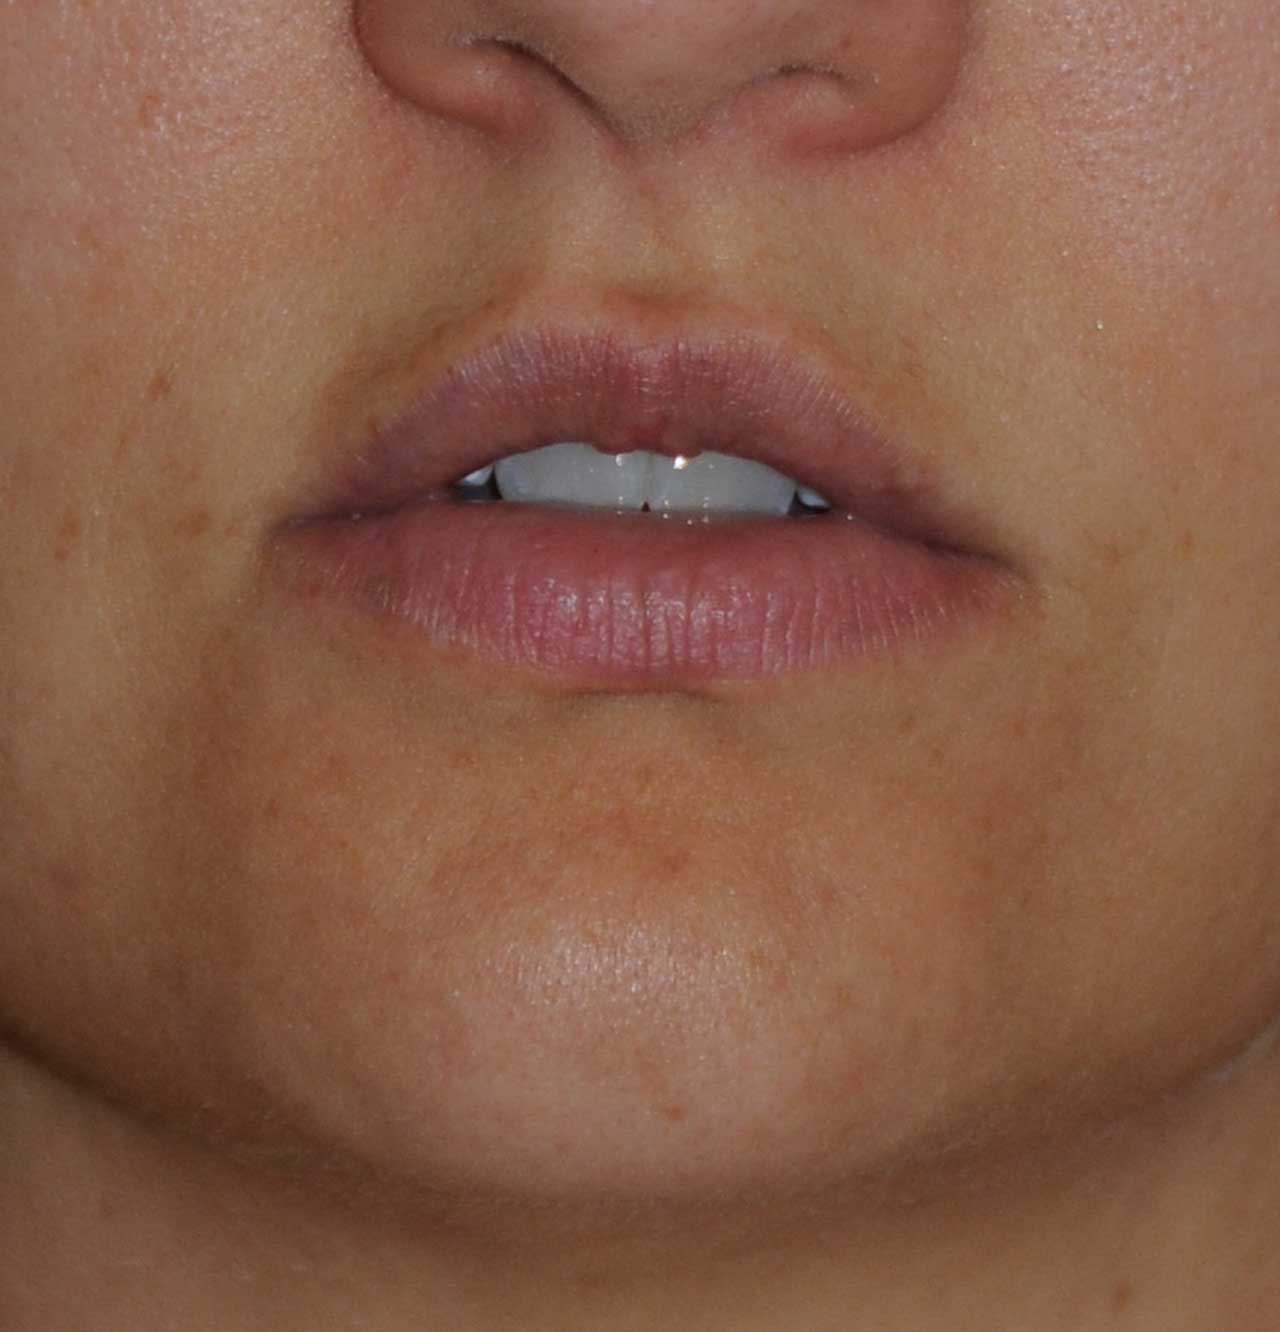 Before Silicone Permalip Implants for small, thin lips